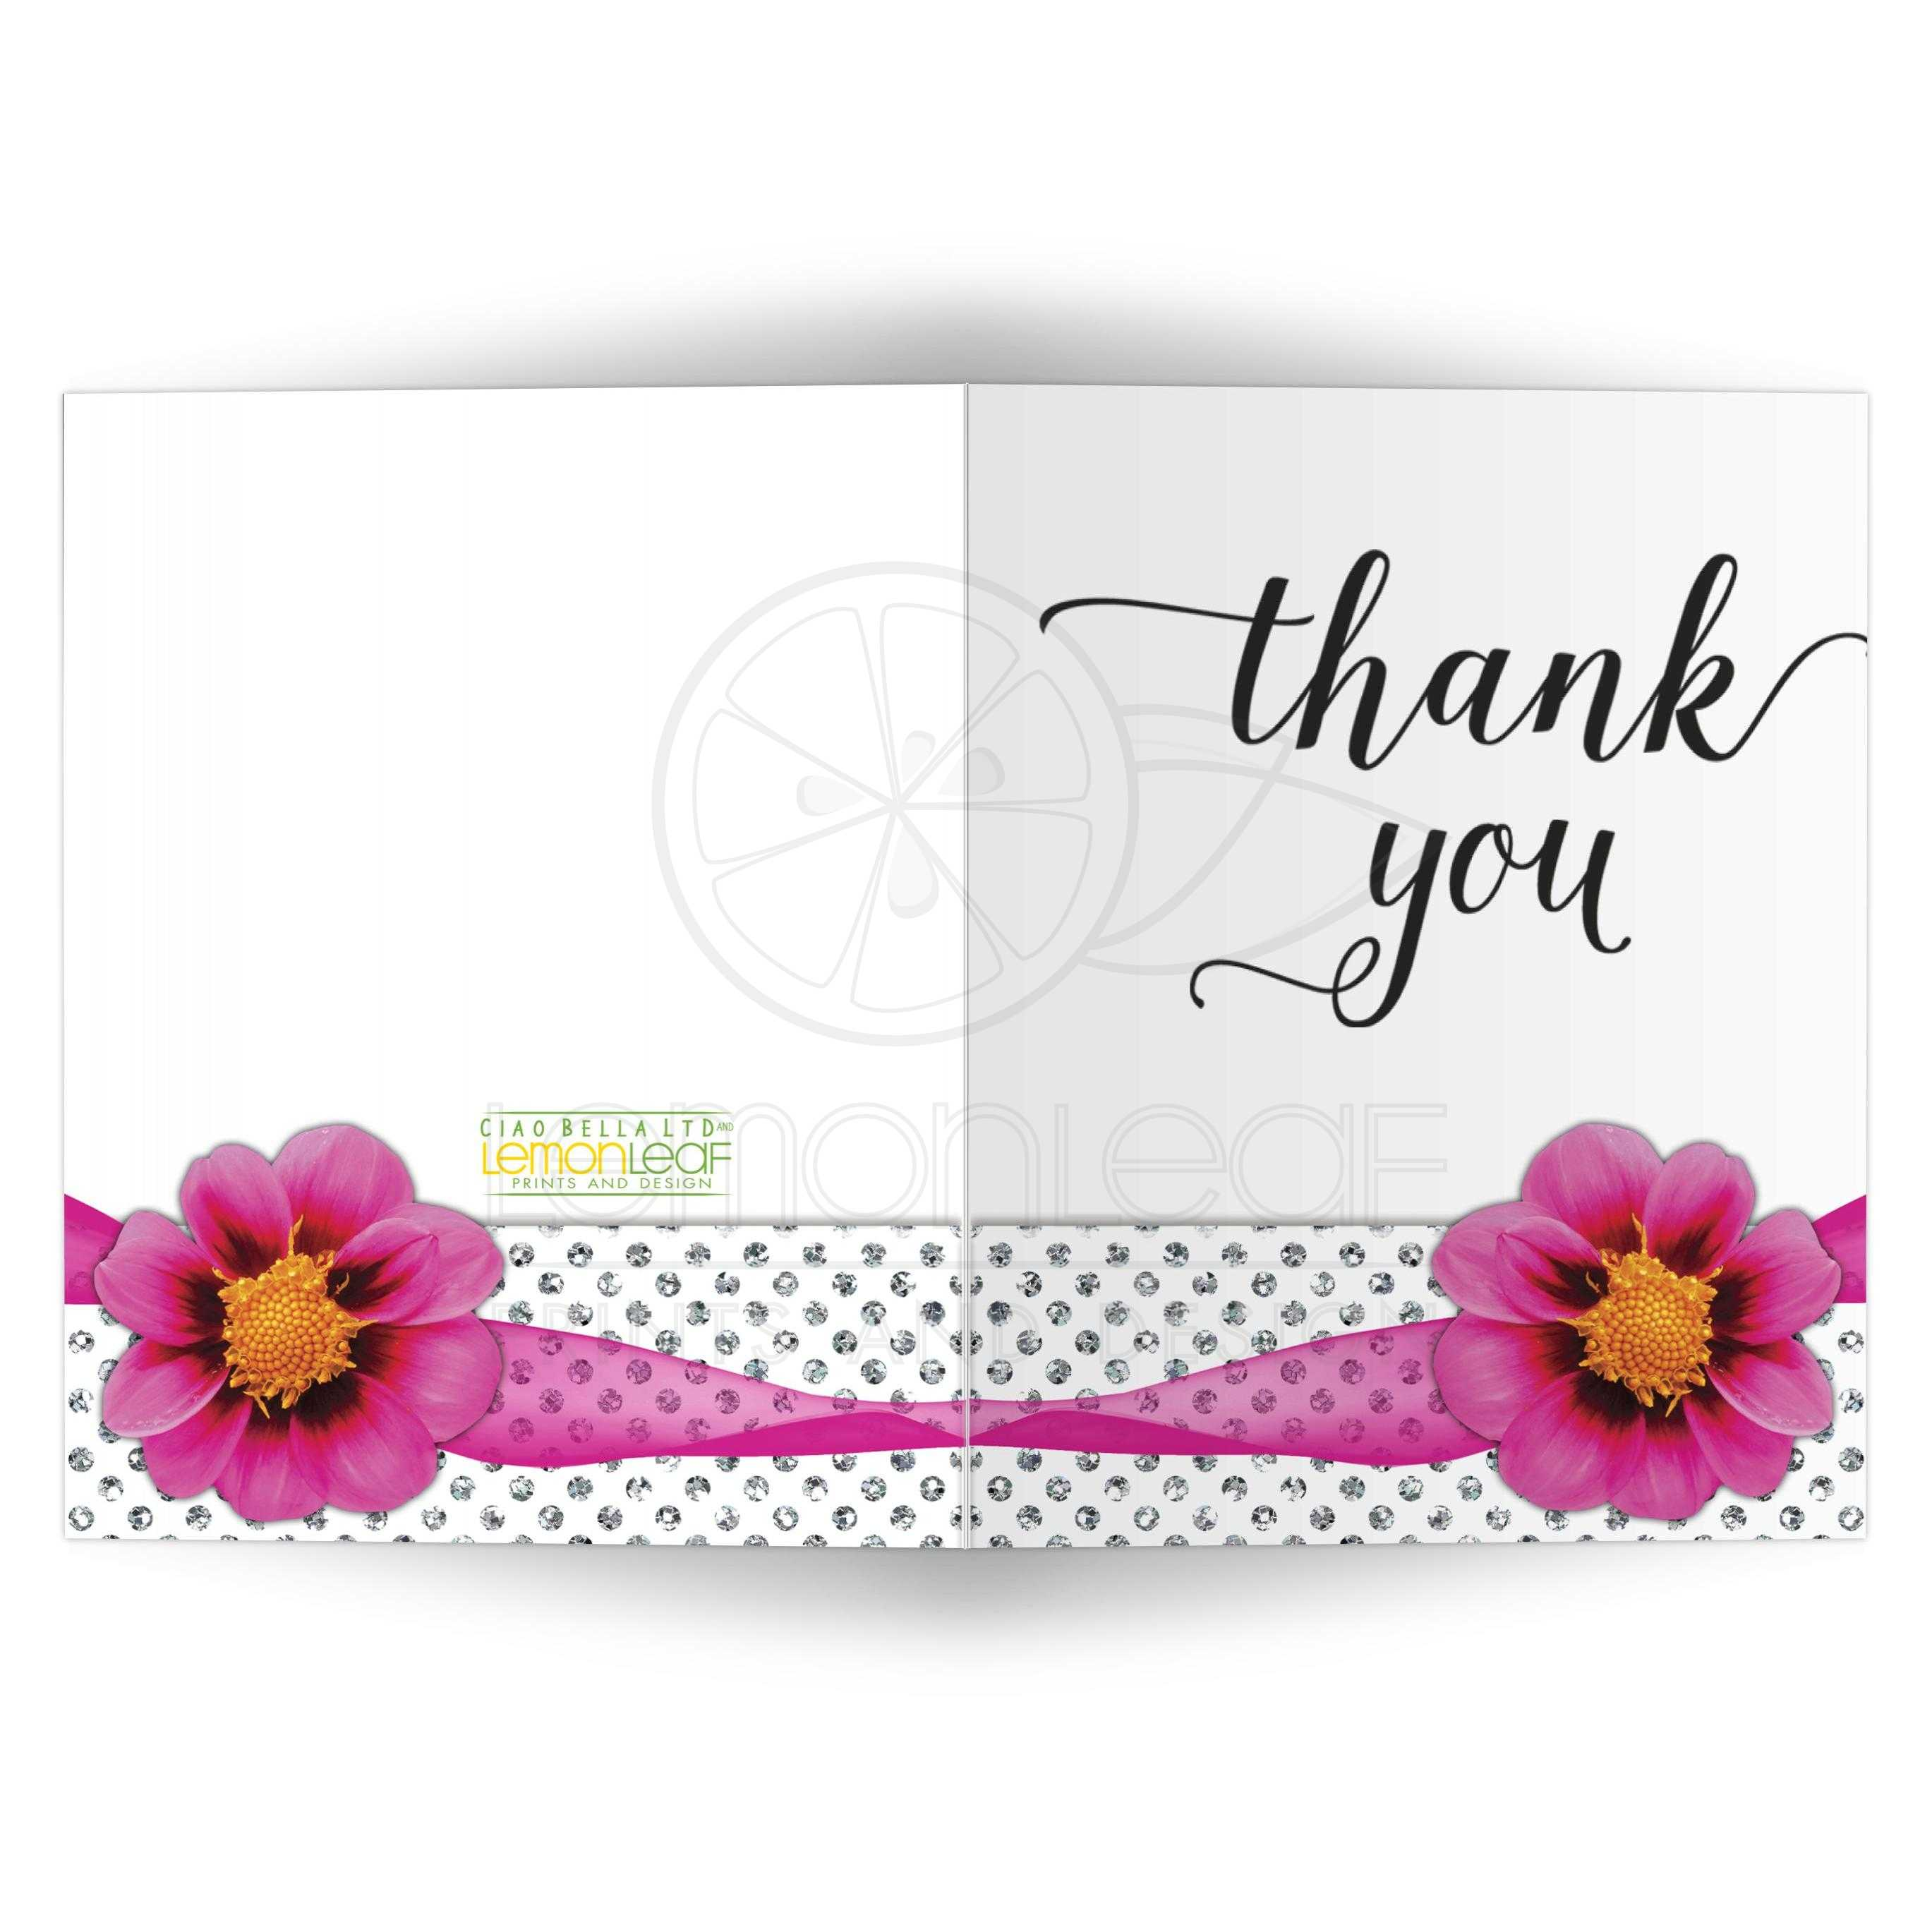 Hot Pink Flower With Sparkly Glitter Polka Dots Thank You Card